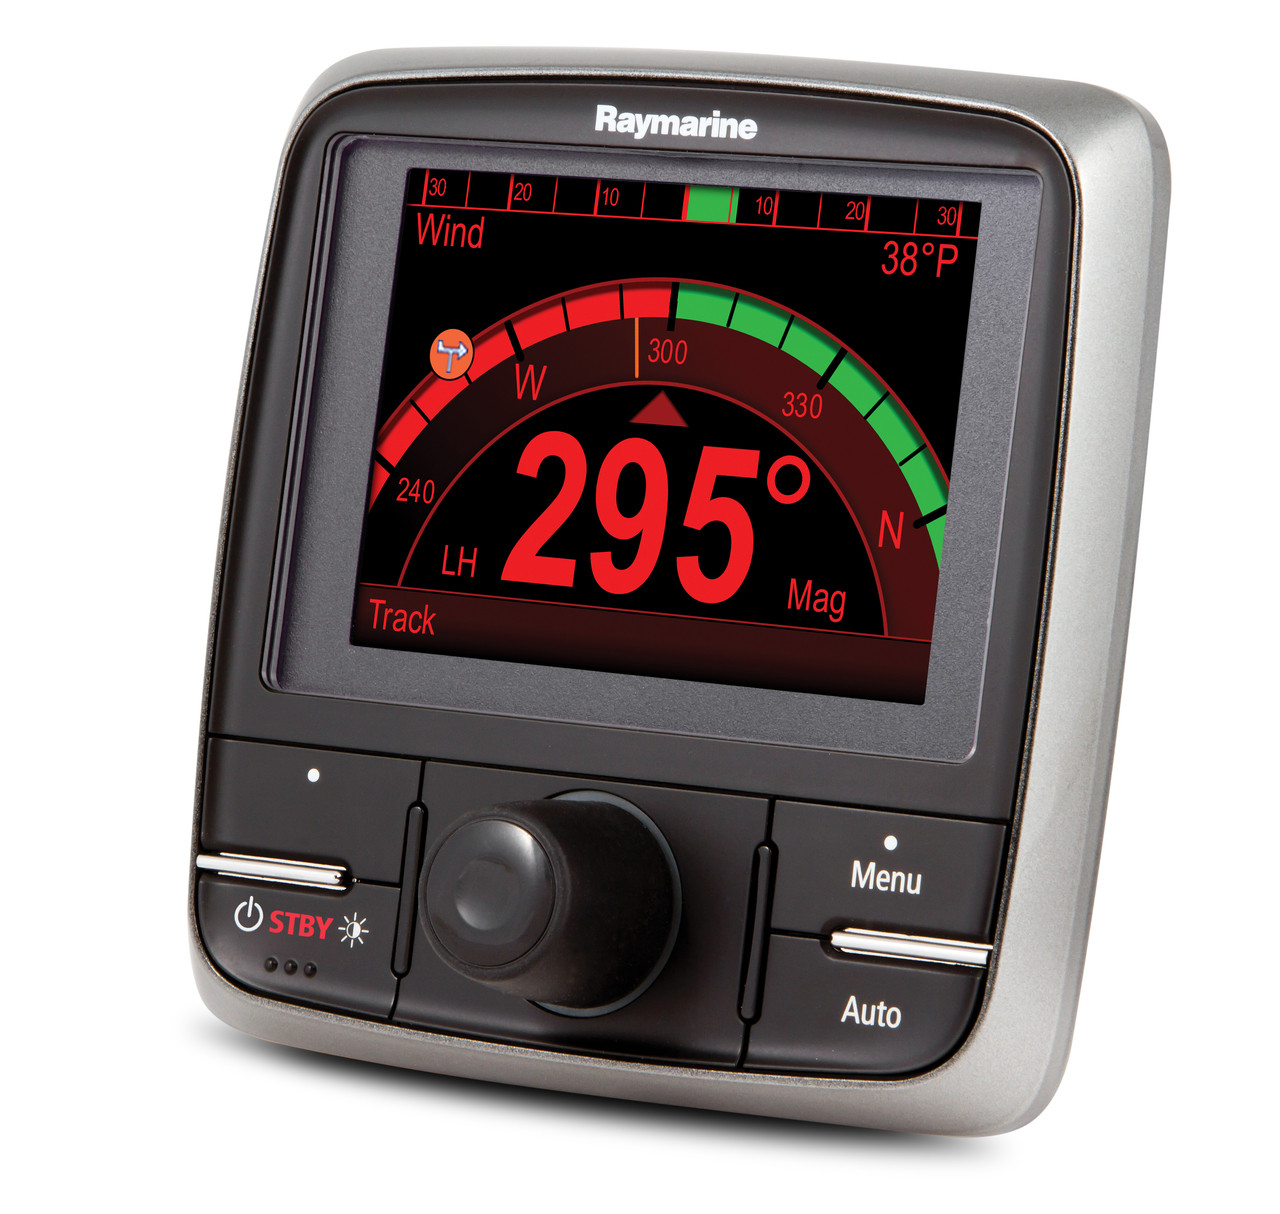 Raymarine p70R Control Head Display Right View